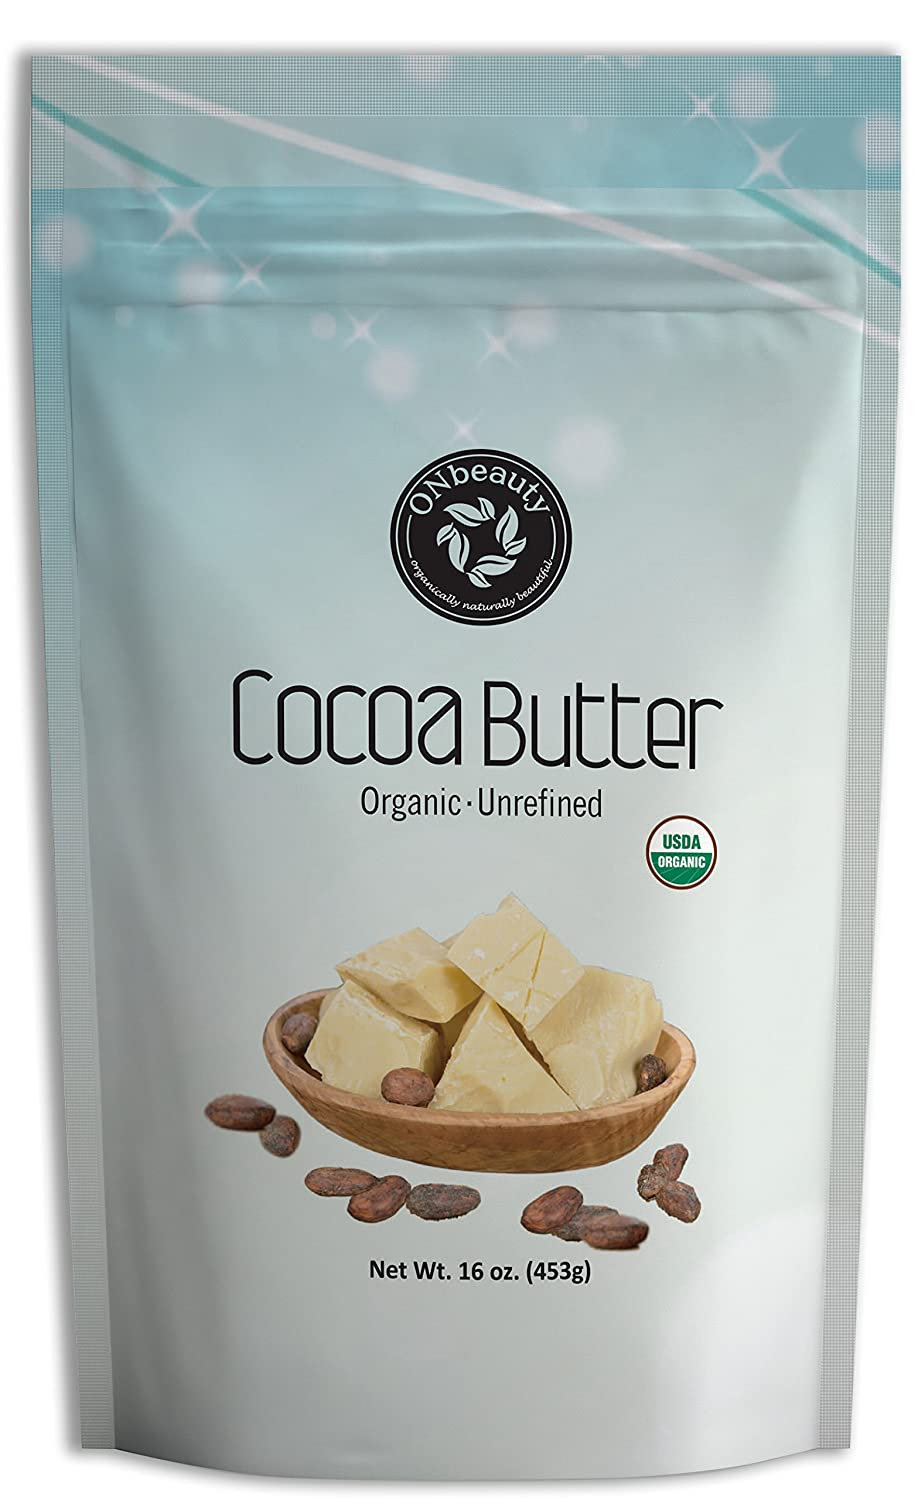 USDA Certified Organic Unrefined Cocoa Butter by ONbeauty - 16 Oz, FOOD GRADE - Raw ON Beauty